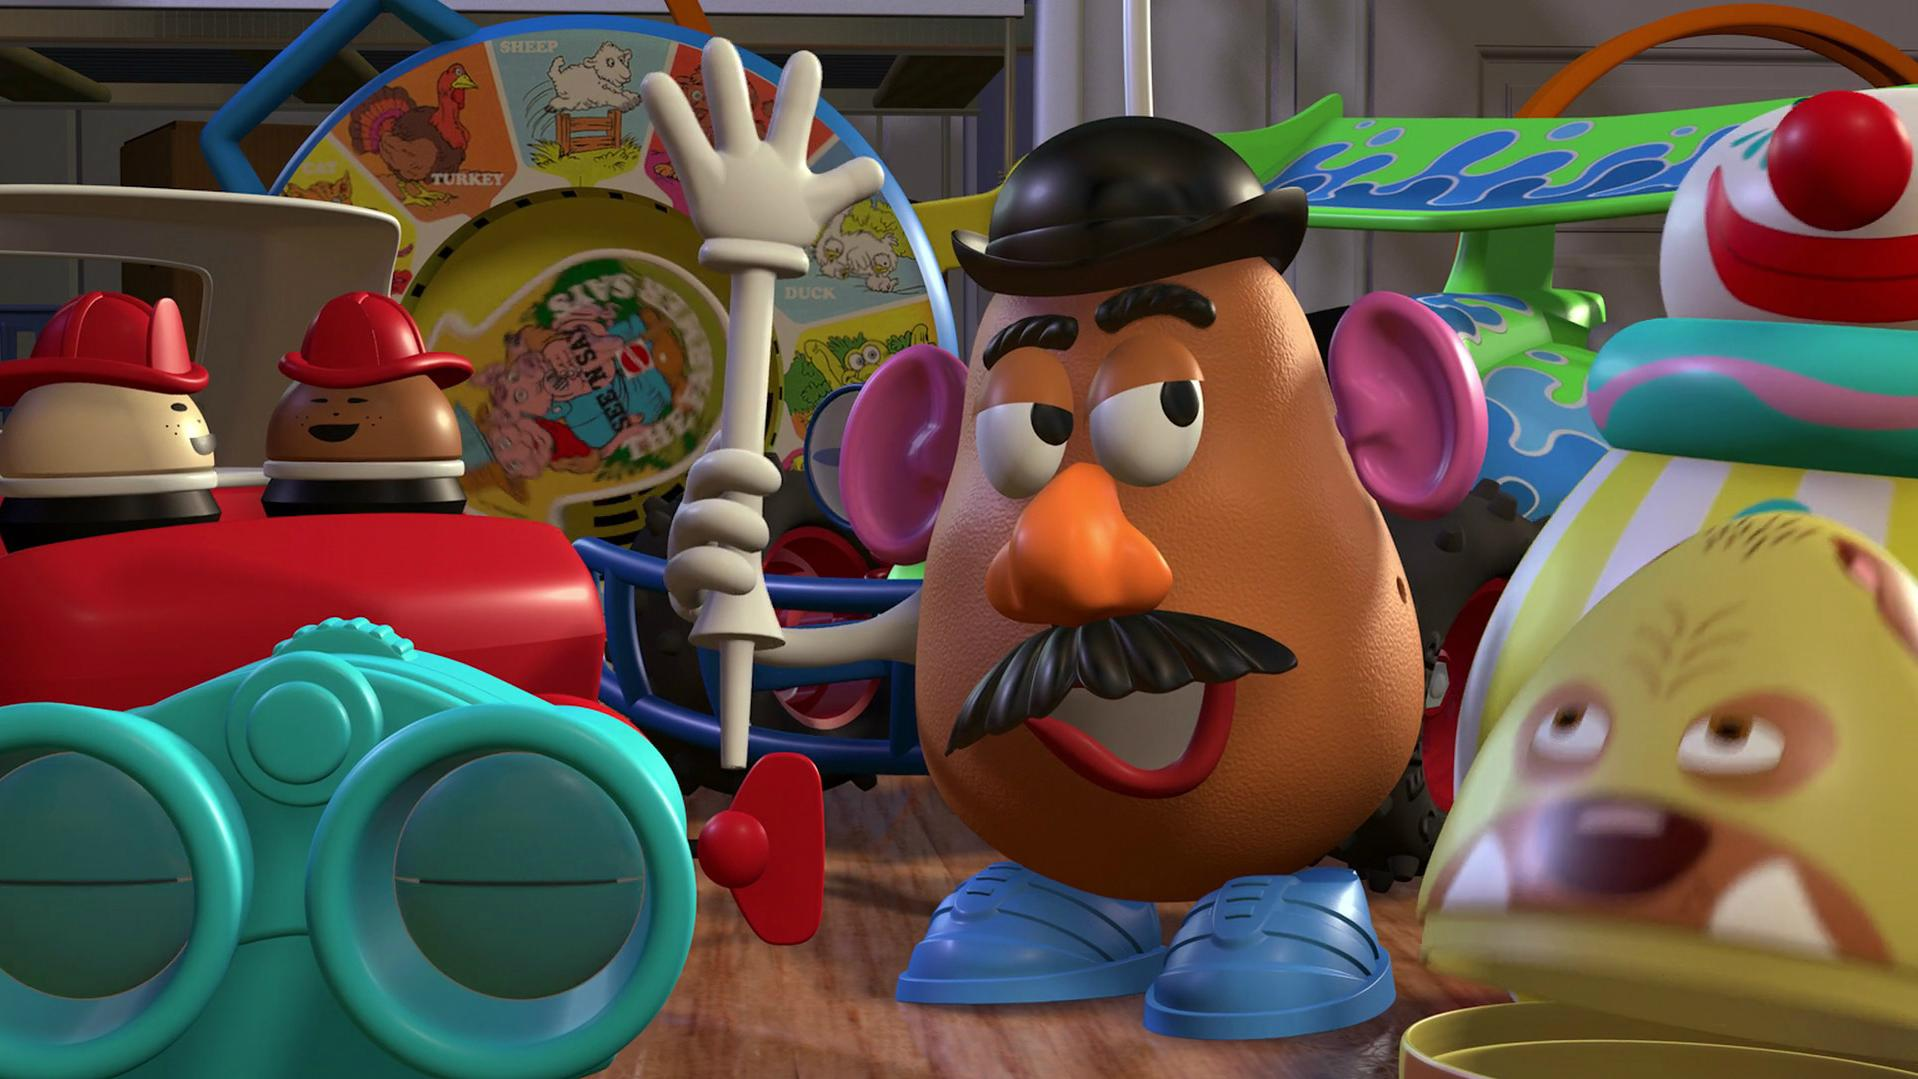 Don Rickles Had Not Recorded Mr. Potato Head Role In Toy Story 4 Before Death | The Independent